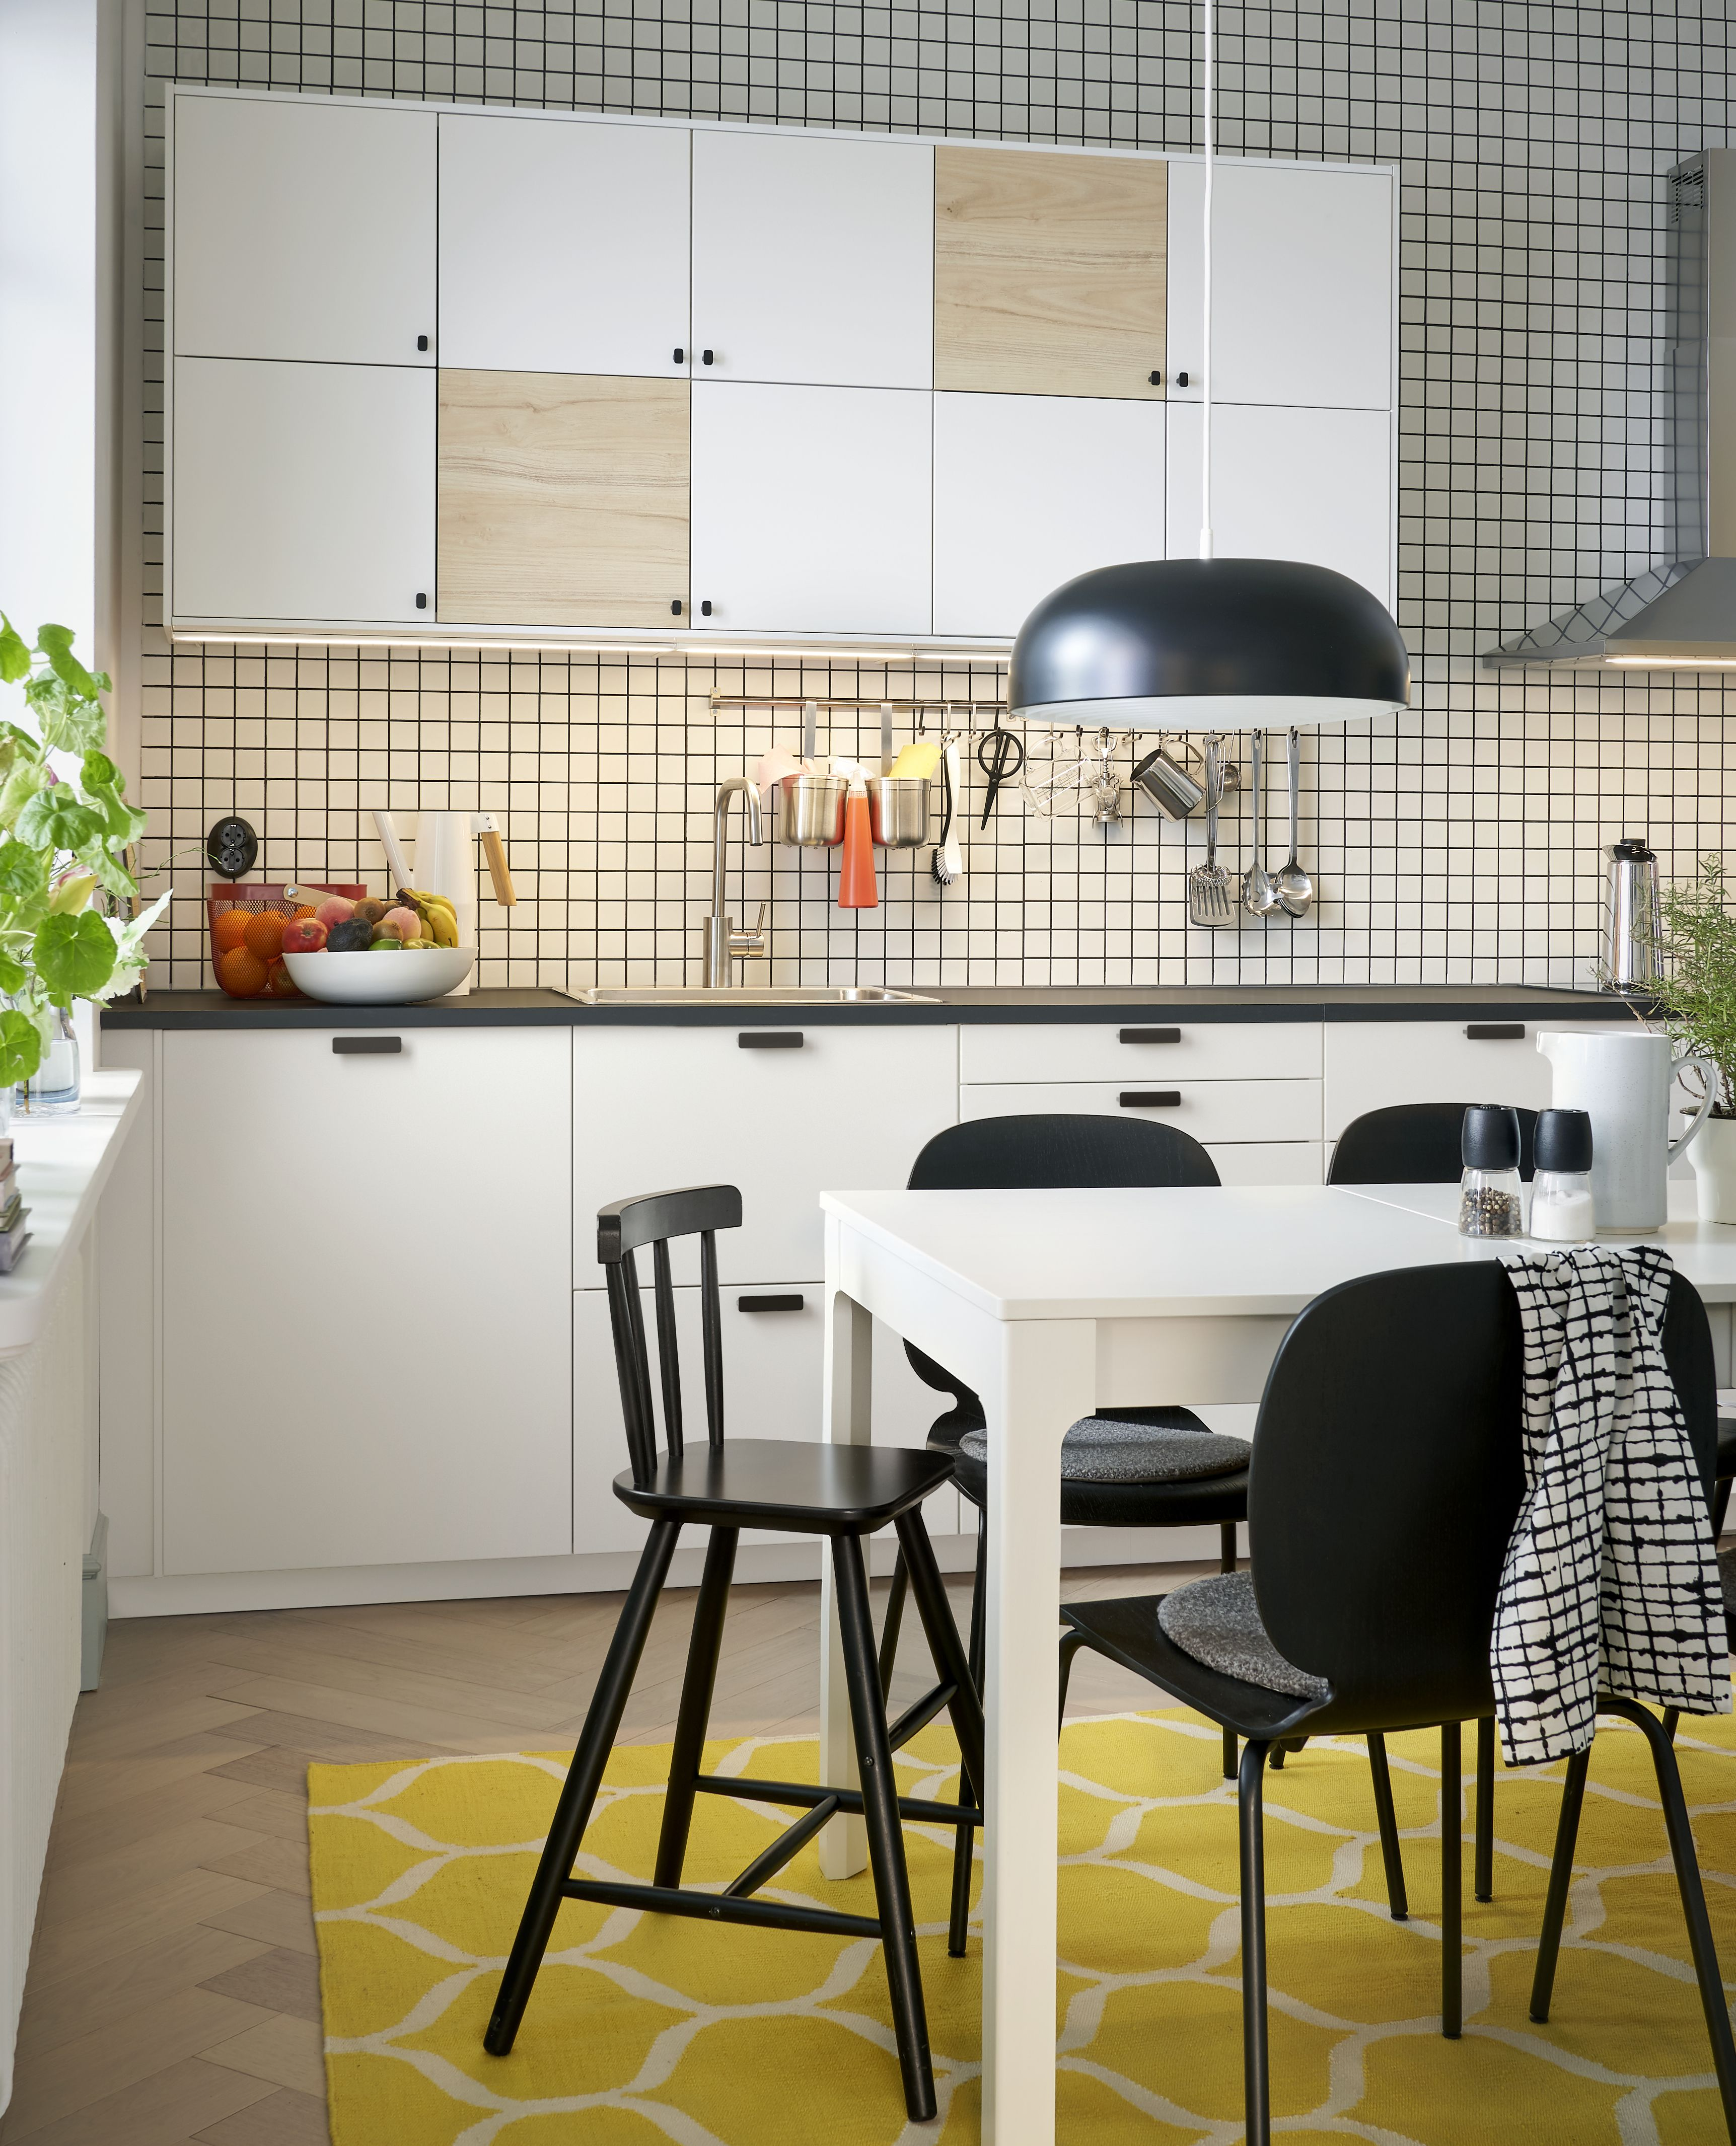 Pin By Ikea Baltics On Living With Children Furniture Home